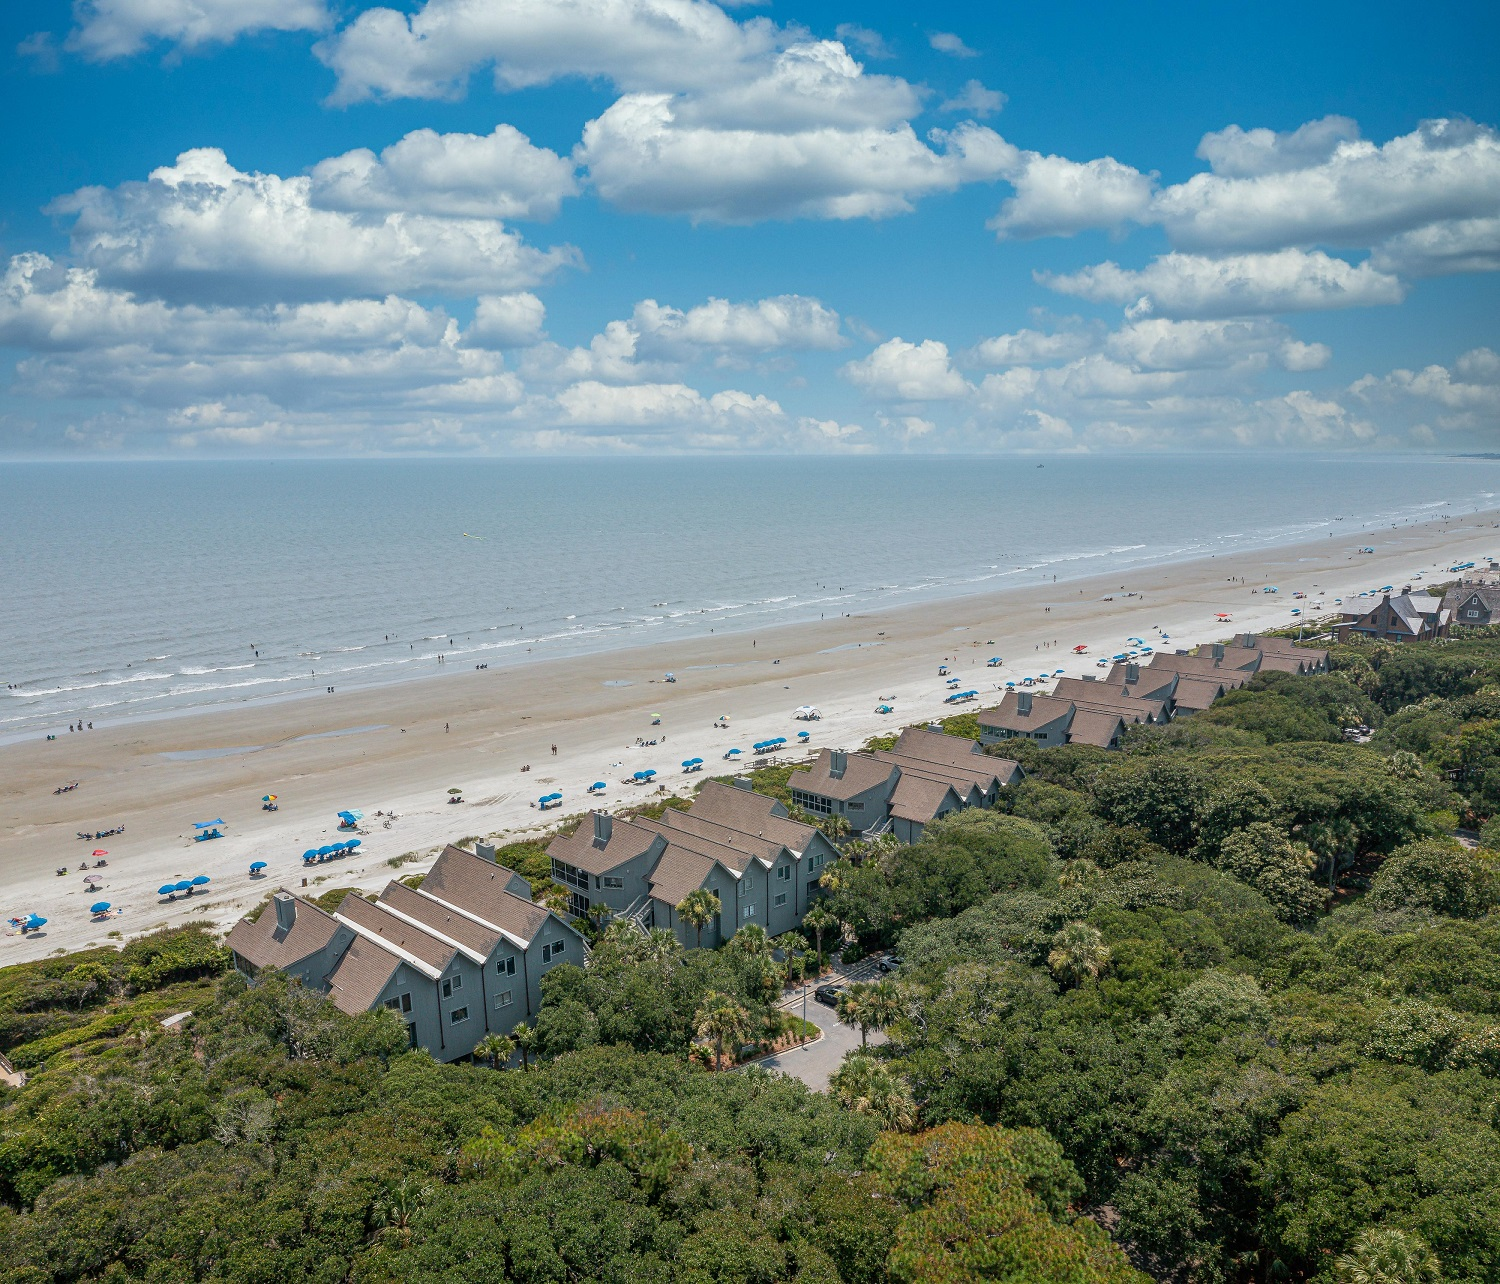 Aerial view of beach, landscaping, and homes at Mariner's Watch